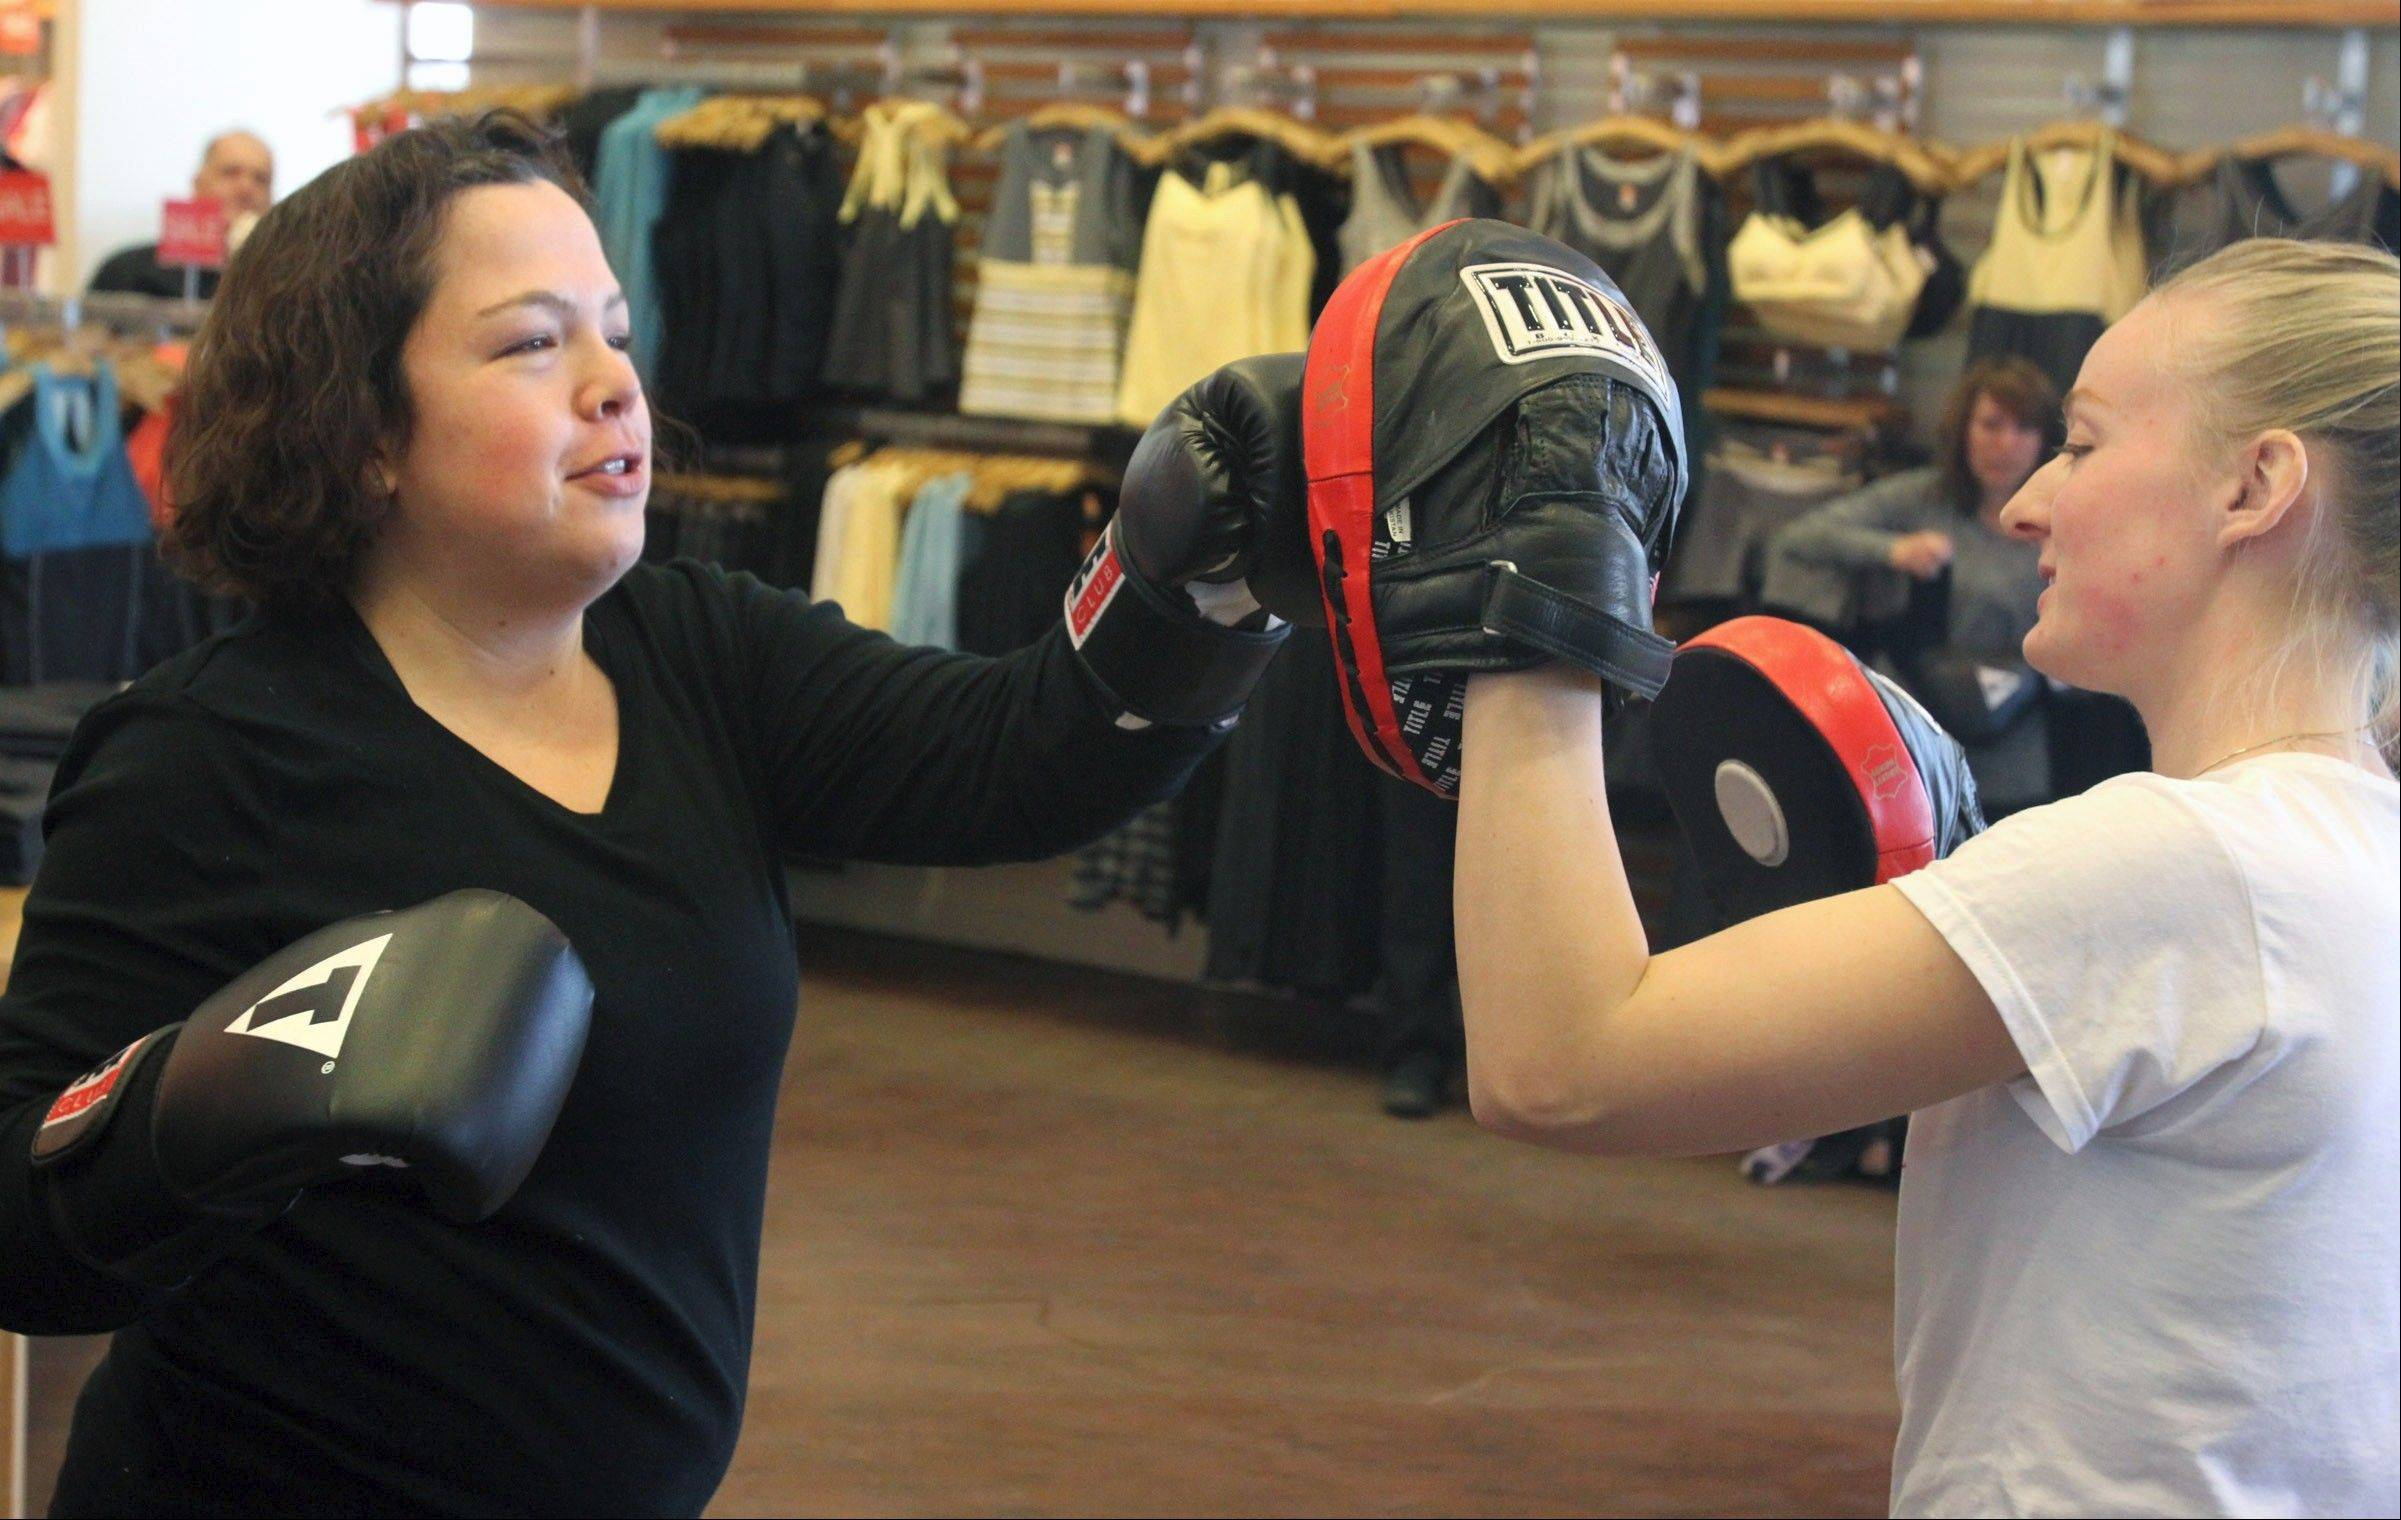 Karen Castillo is hanging tough despite struggling on the scale. Recently she had an opportunity to check out a Power Hour workout demo at the Lucy store at Deer Park Town Center with Title Boxing Club of Lake Zurich manager Michelle Sikorski.